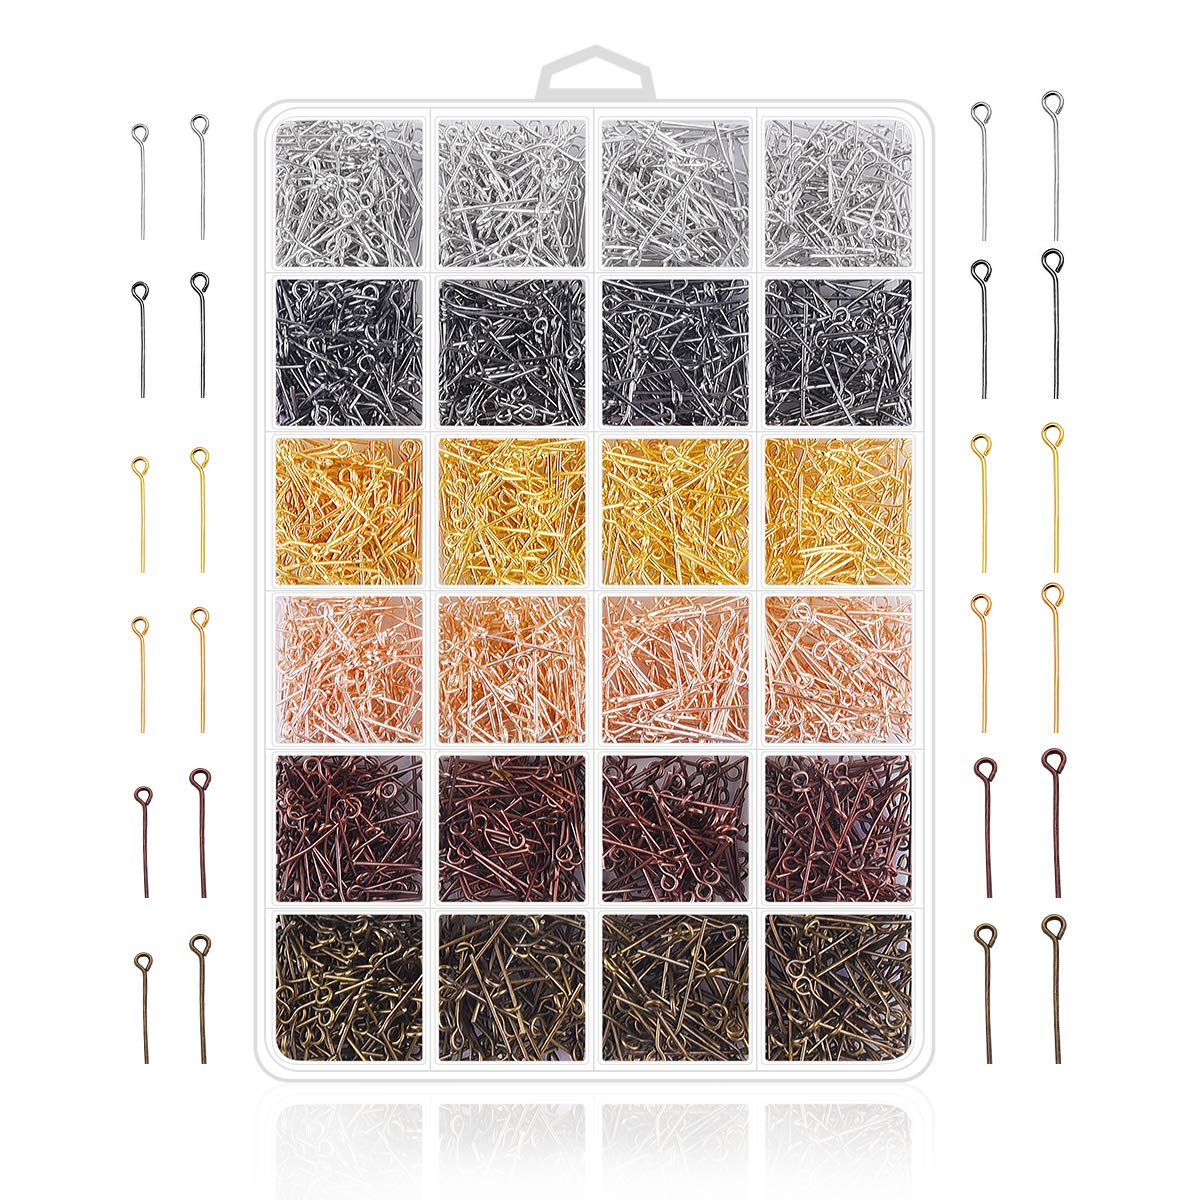 Jewelry Making Pins Supplies 2400Pcs Jewelry Head Pins and Eye Pins for Charm Beads DIY Making Head pin